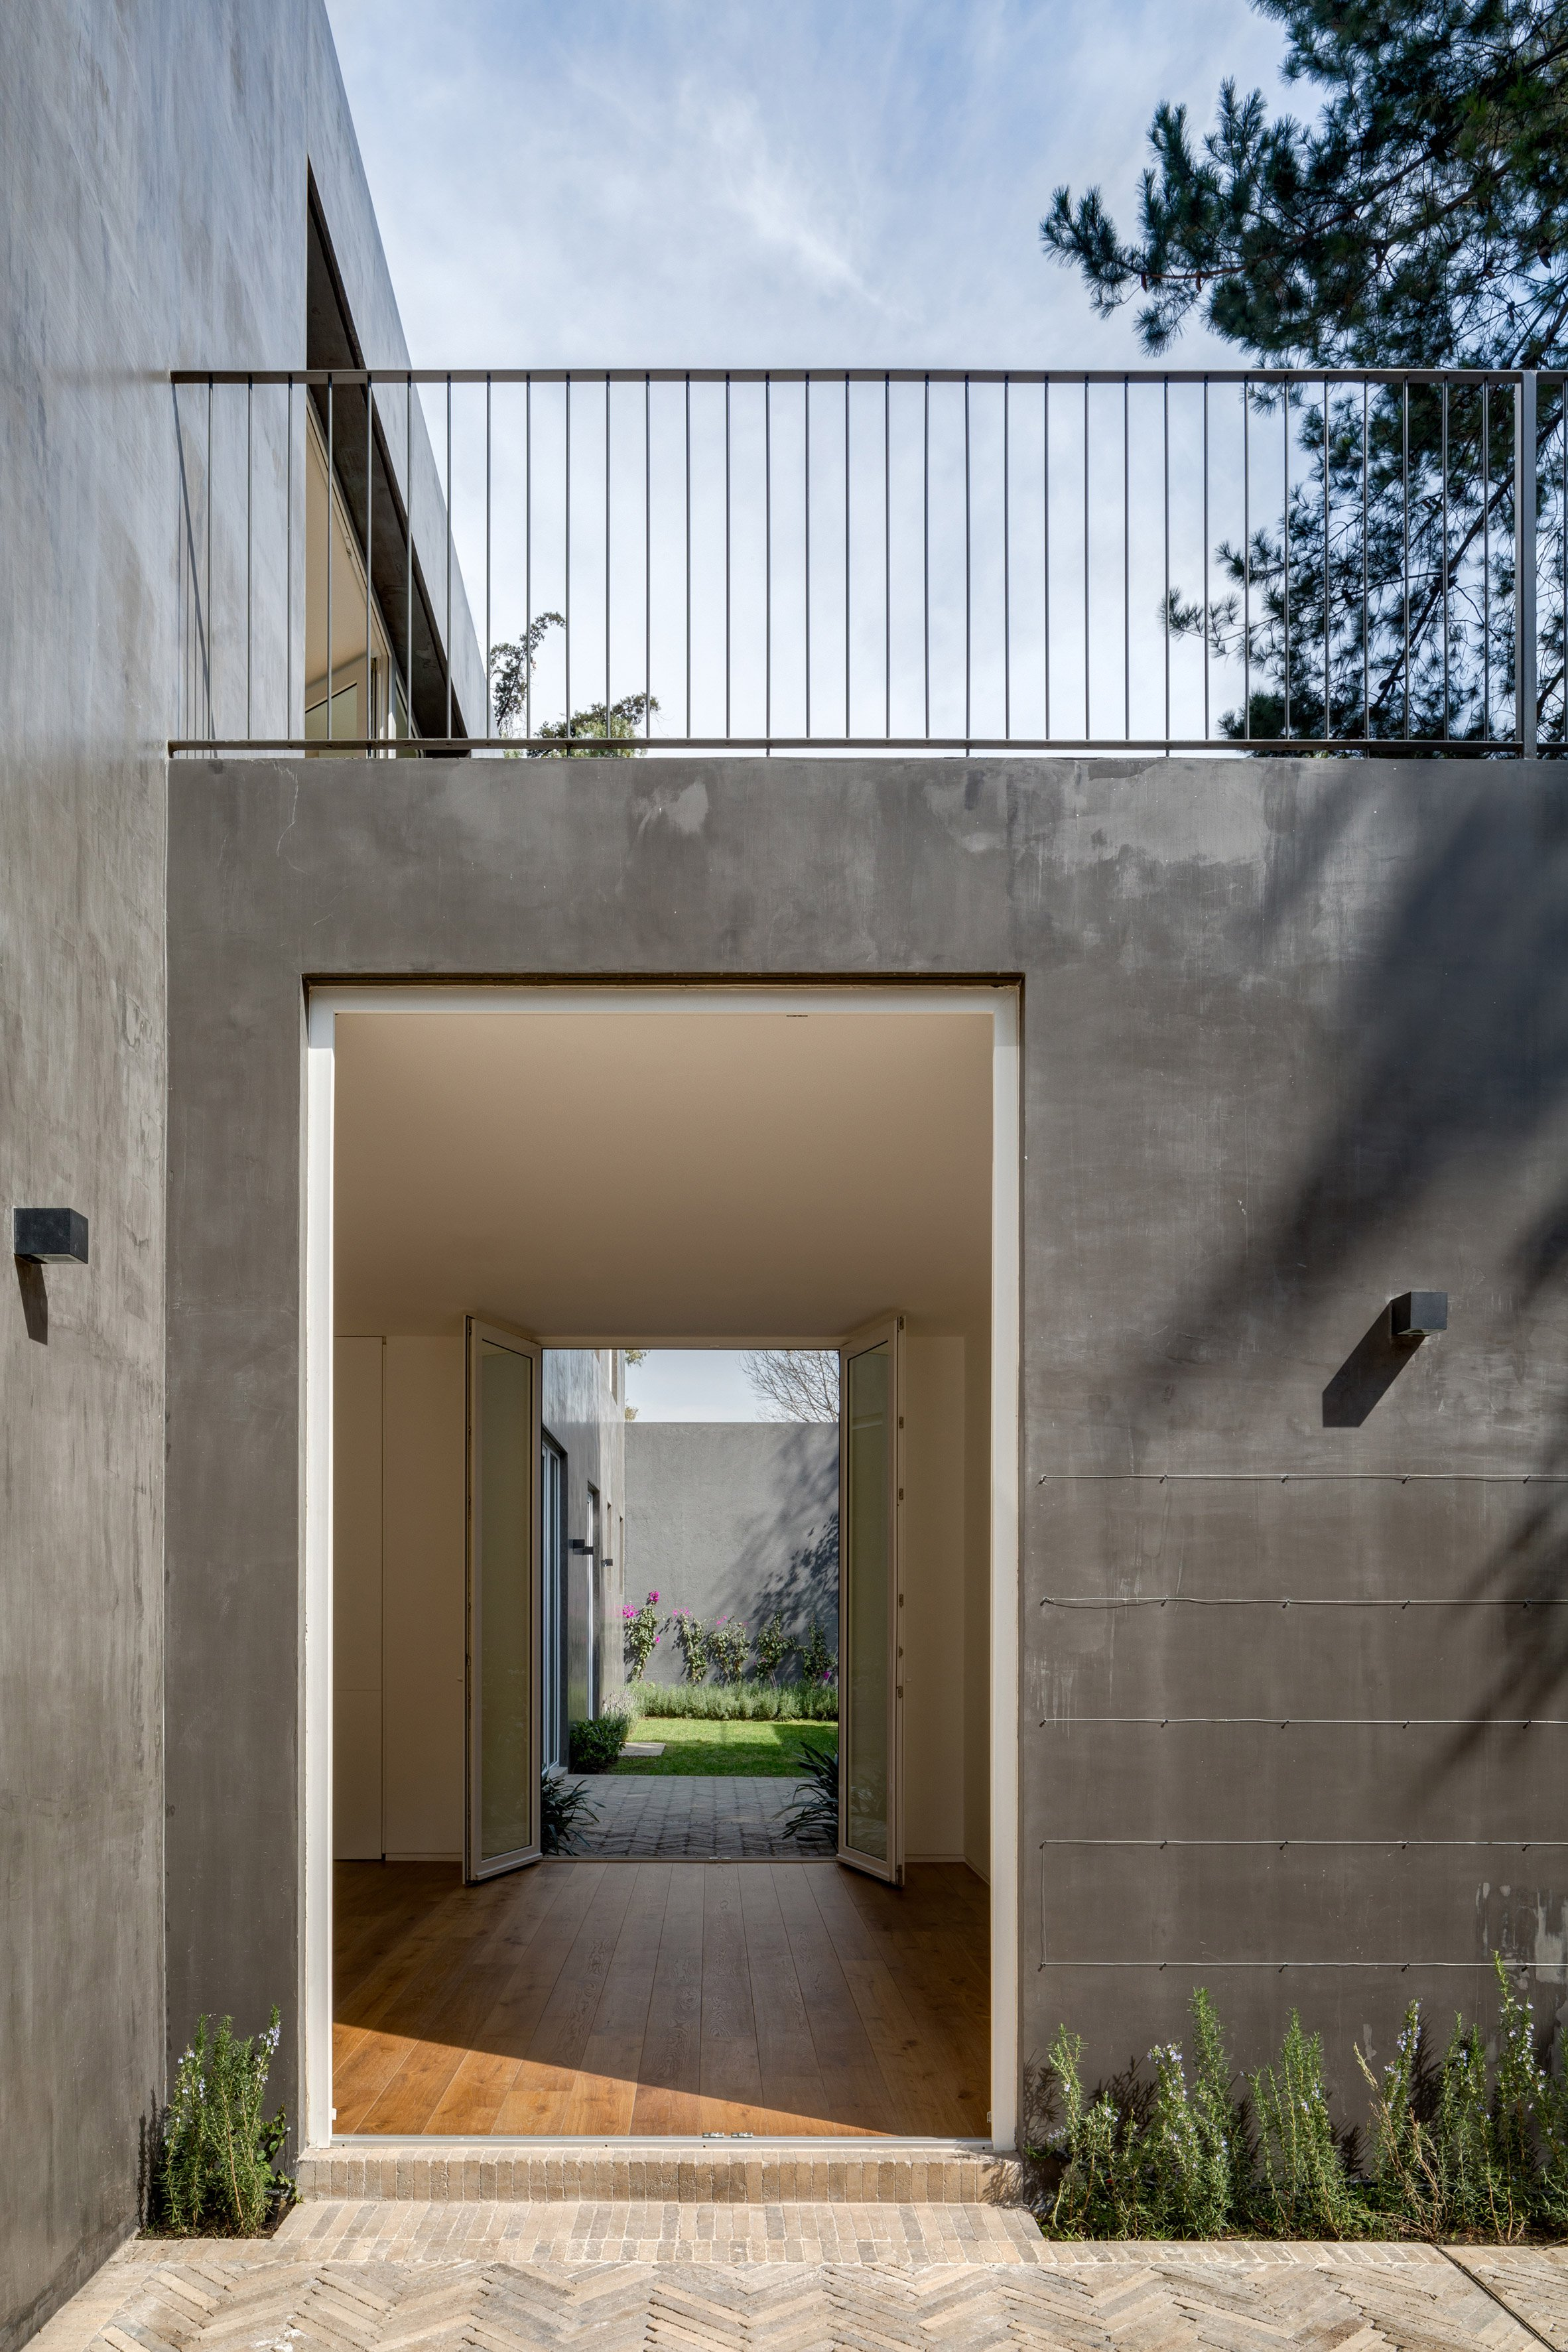 modern concrete home in mexico city unfurls around two courtyards the black finish contrasts starkly against the white interior walls and light hardwood floors creating a dynamic play between the traditional and the